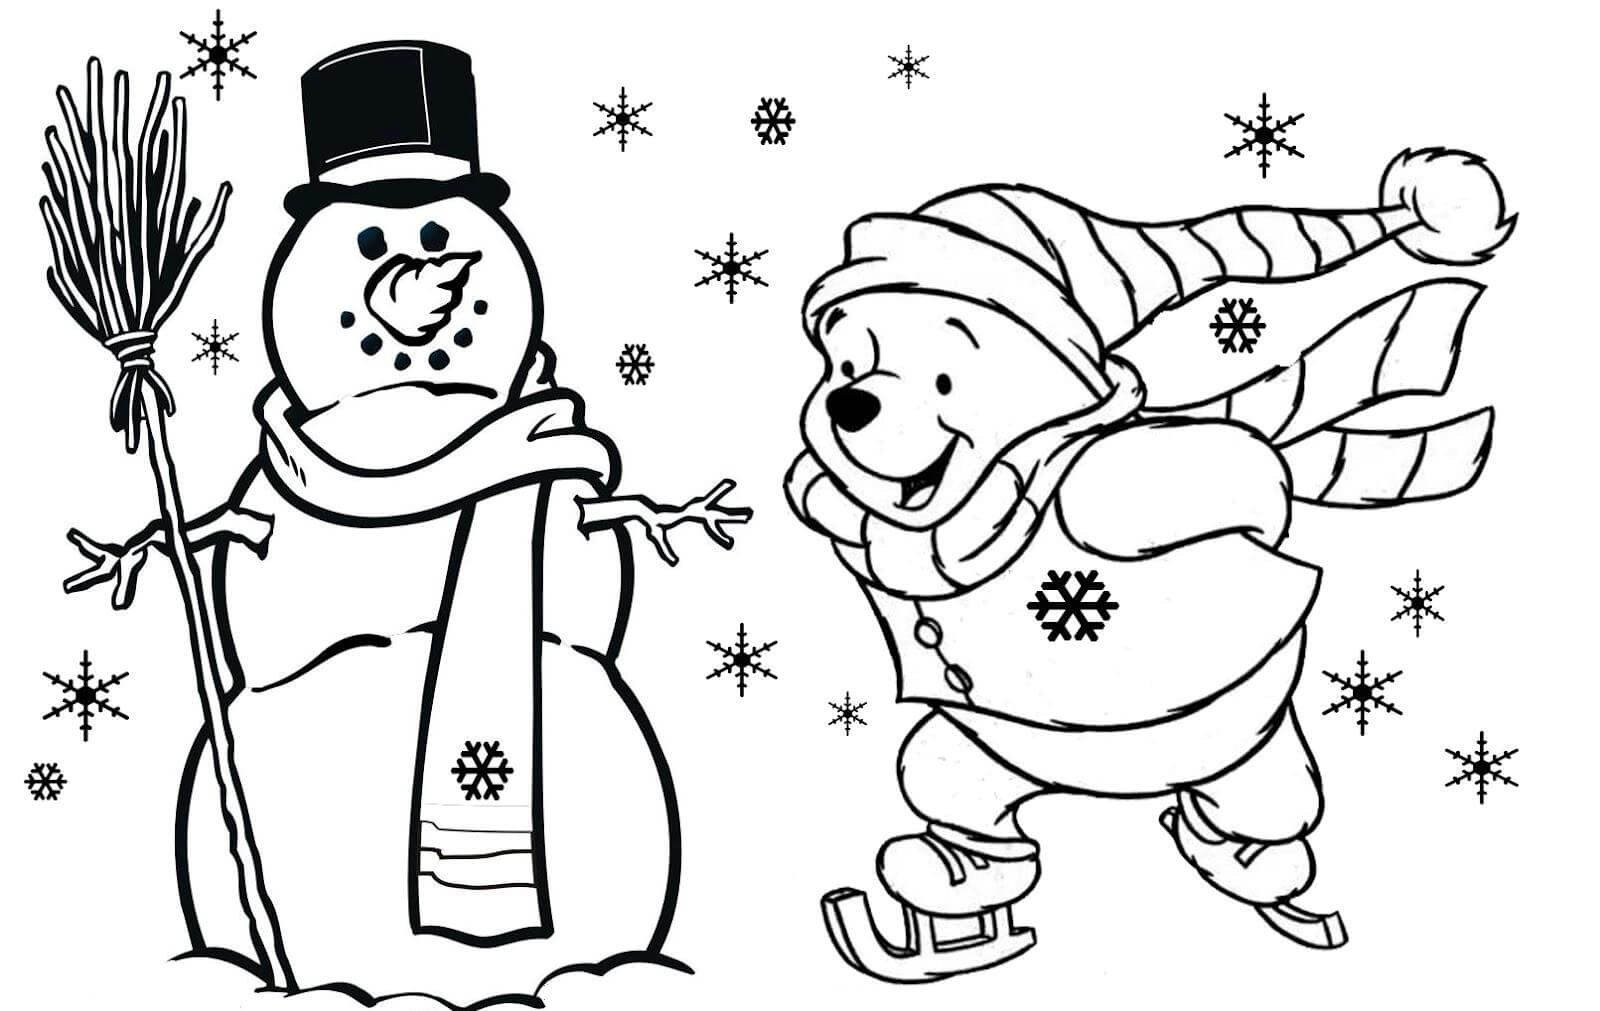 Christmas Coloring Pages For Kids To Print Out  Christmas Coloring Pages To Print Free